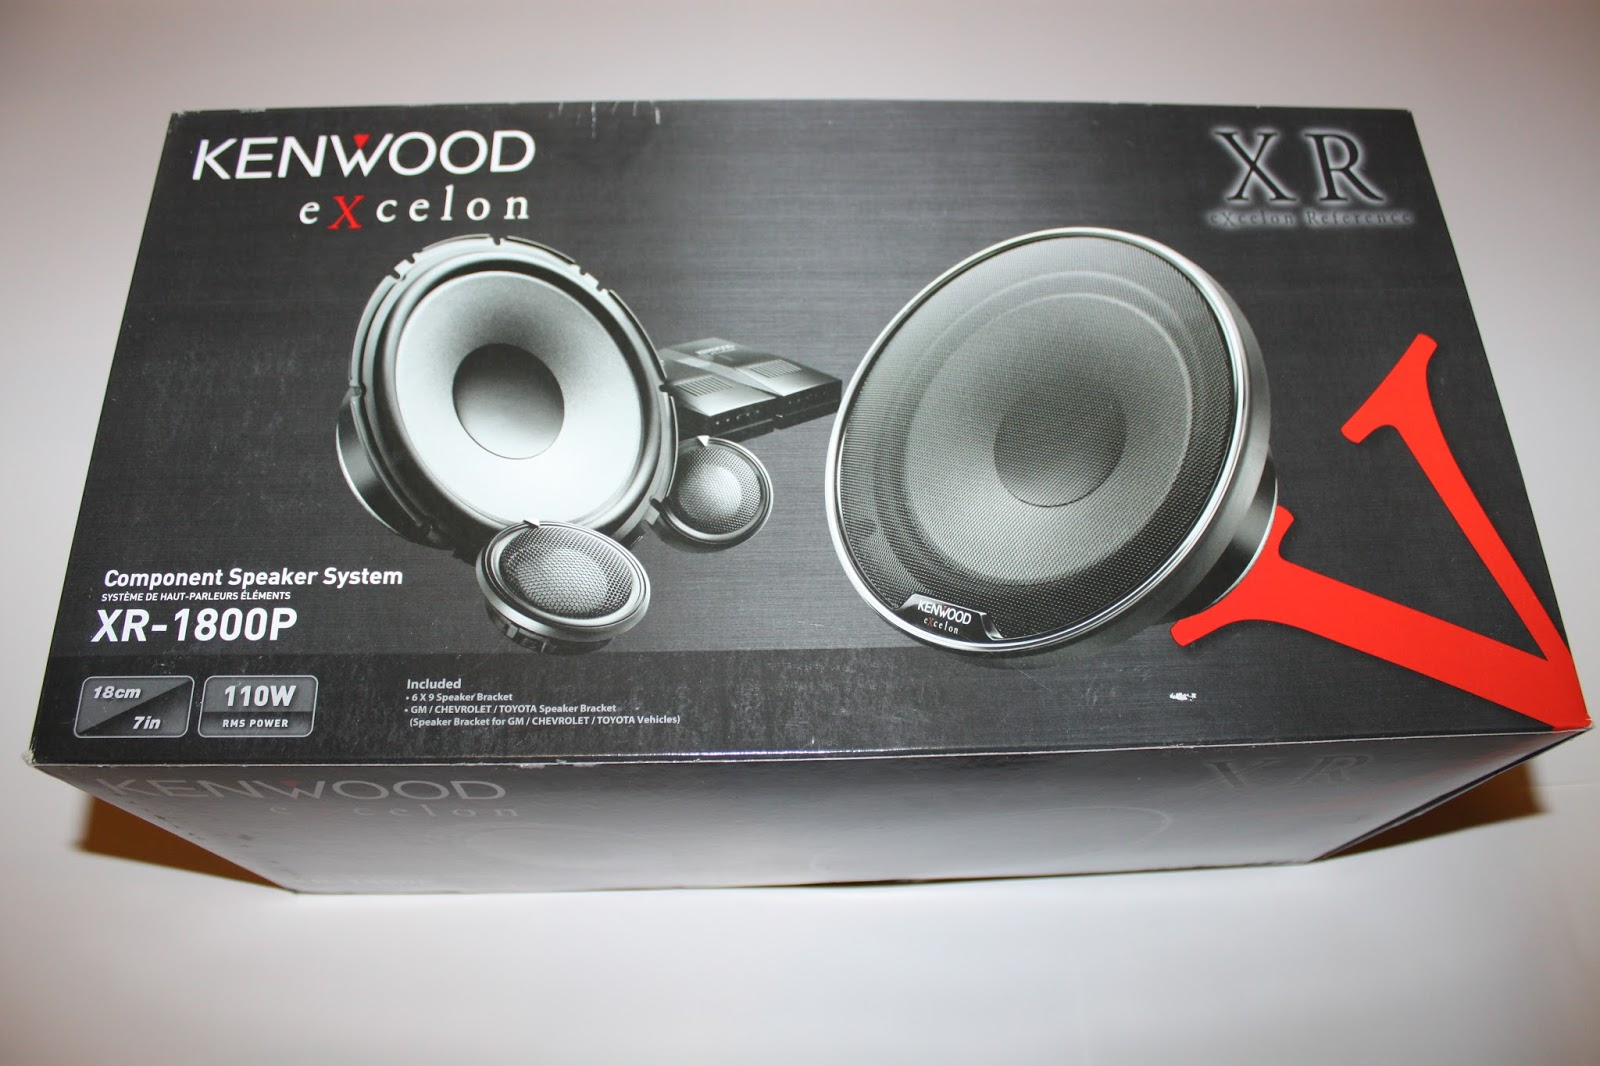 Stereowise Plus: Kenwood Excelon XR-1800P 7